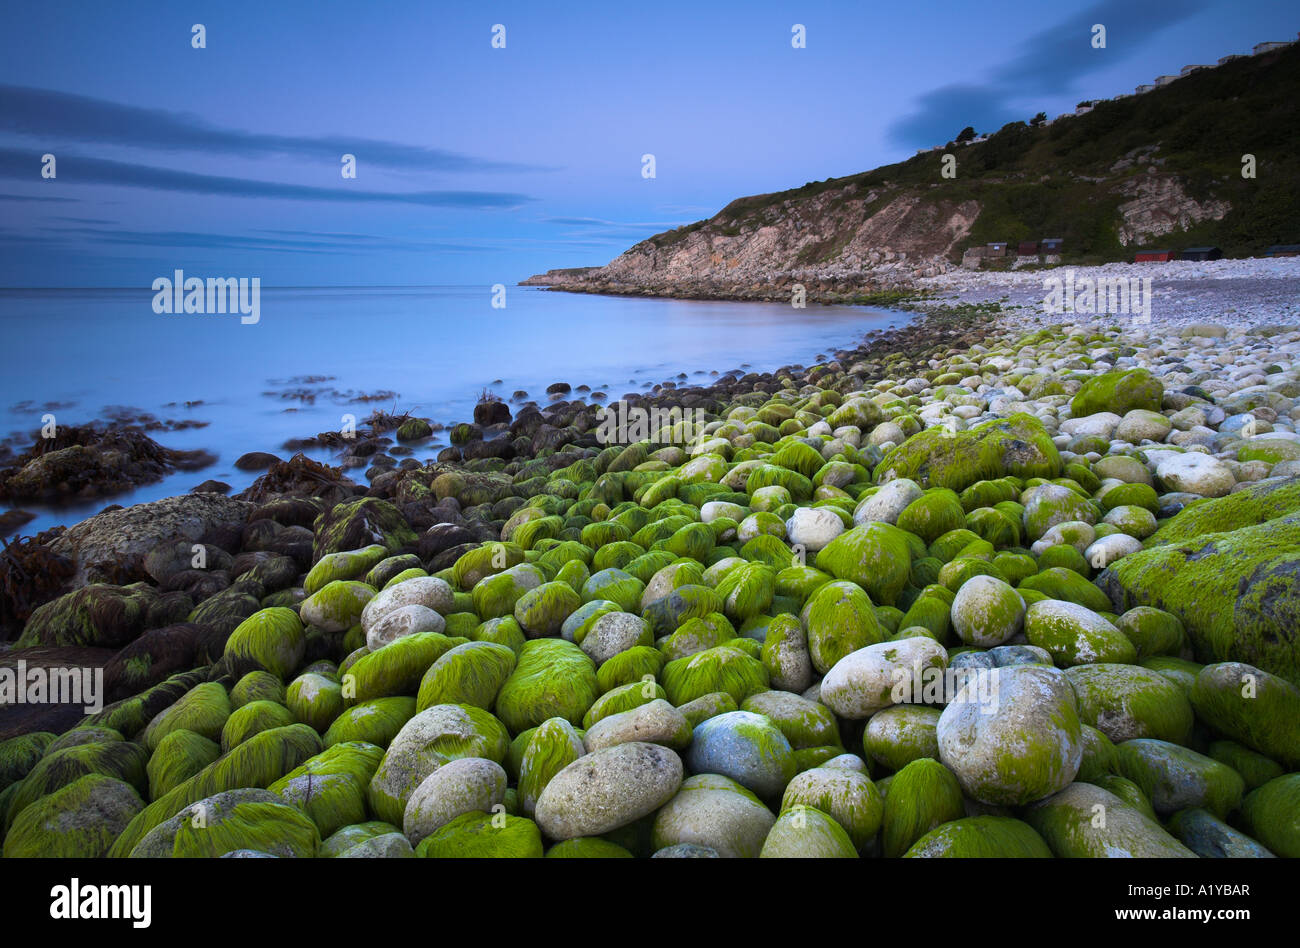 Beach algae stockfotos beach algae bilder alamy for Grune algen